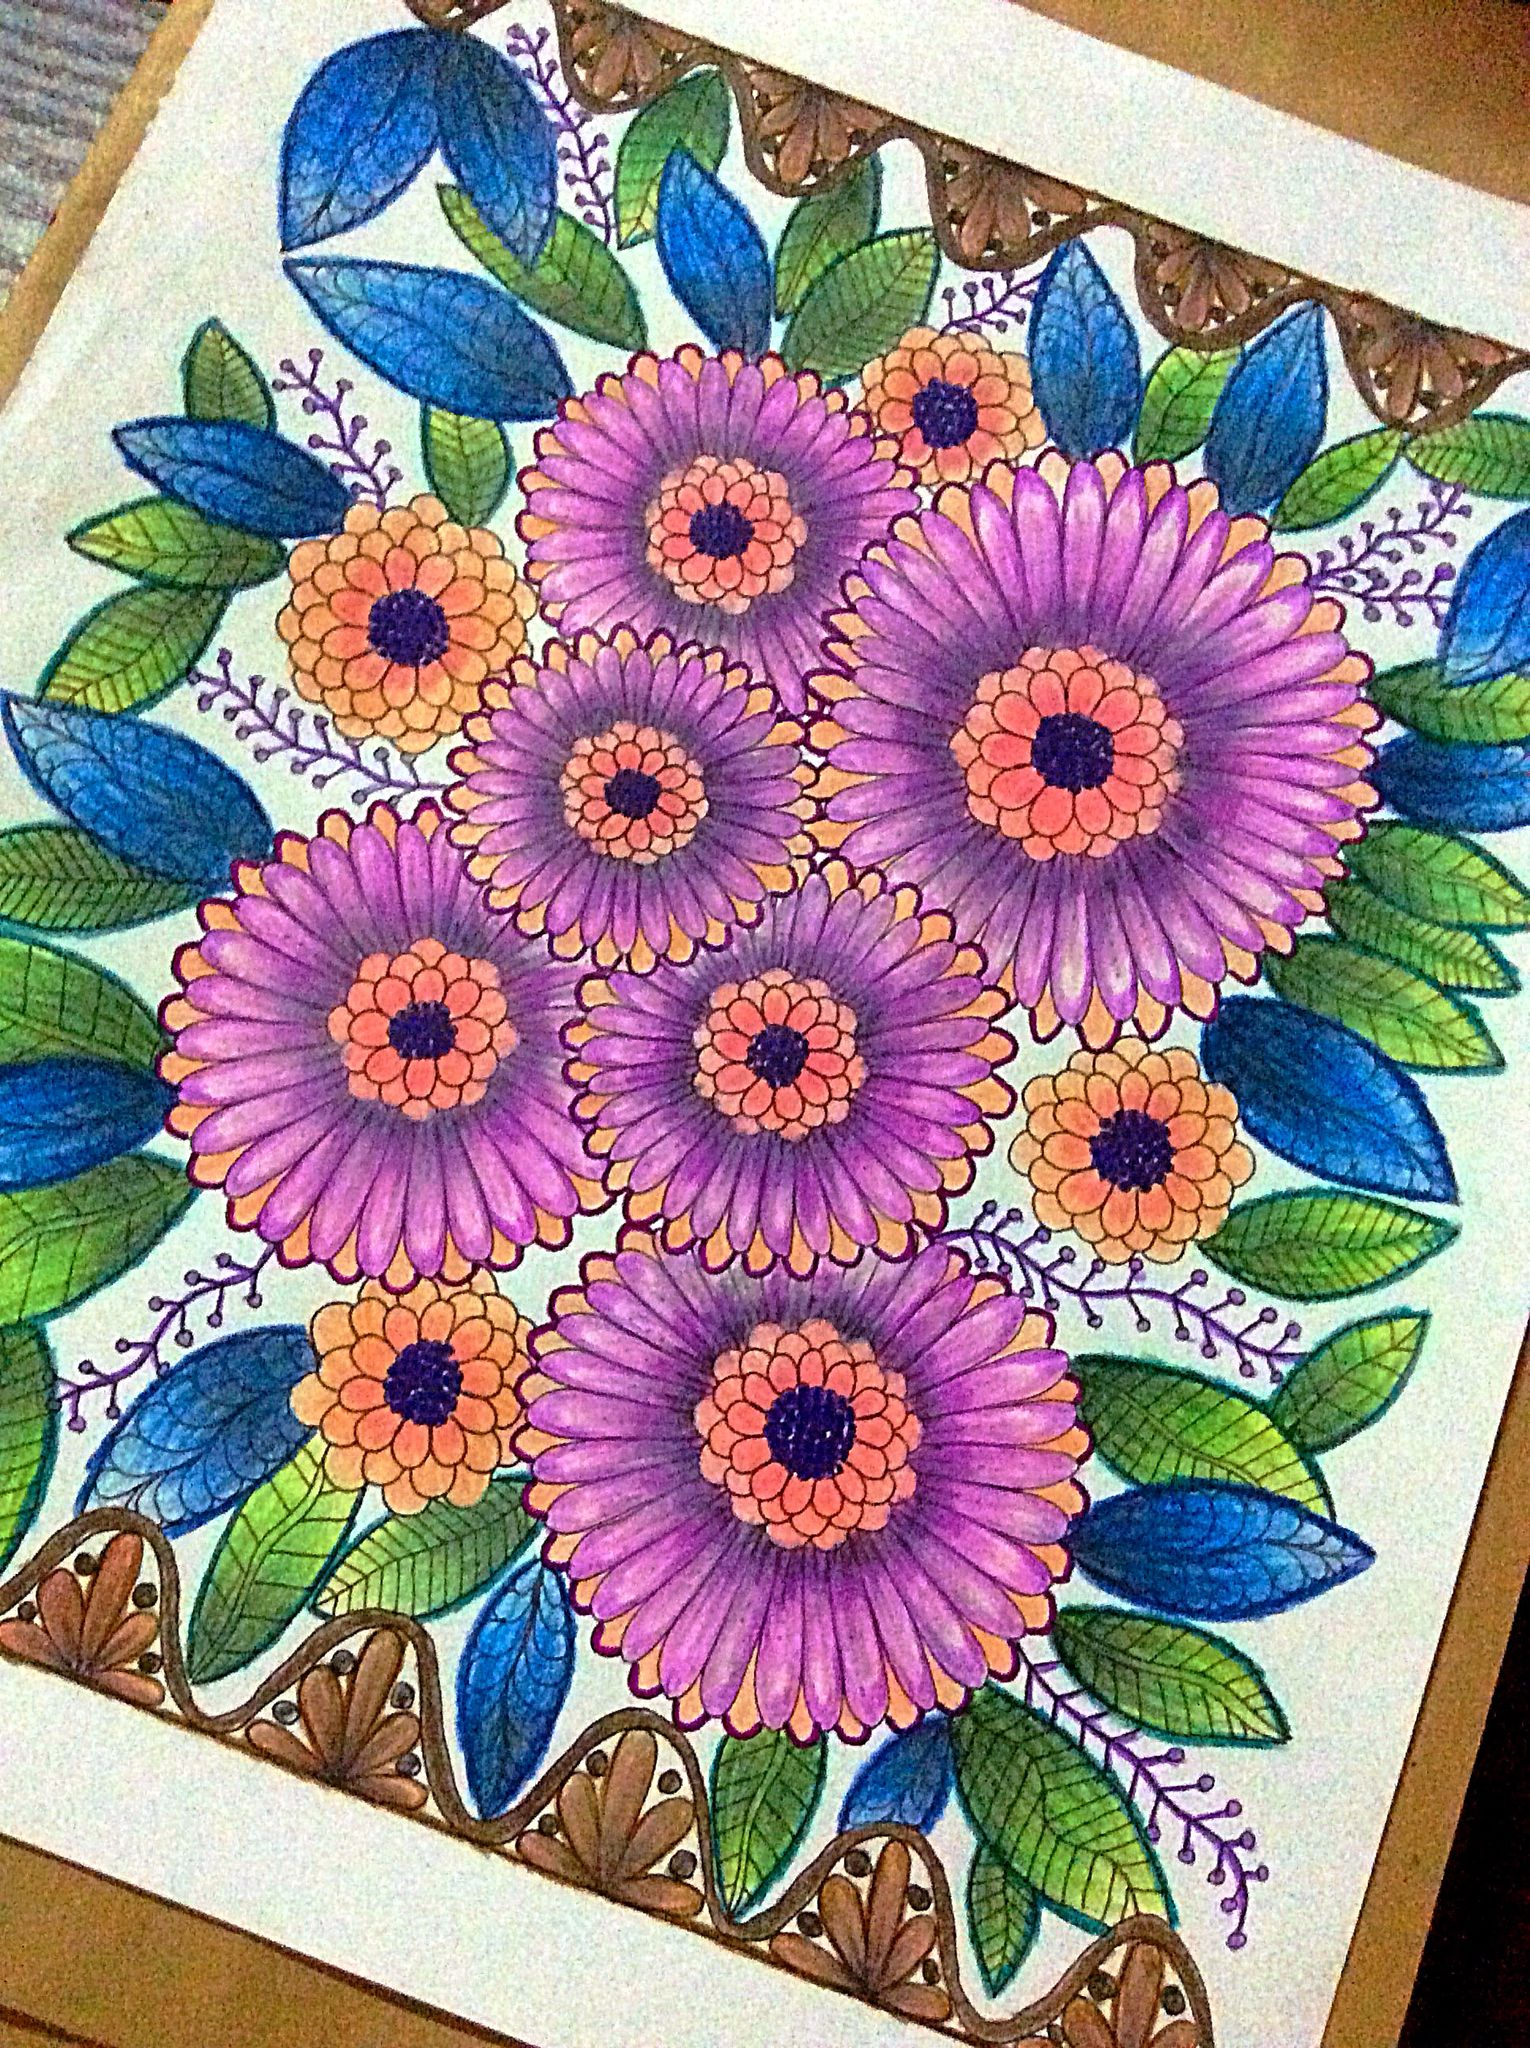 Zendoodle coloring enchanting gardens - Zendoodle Enchanting Gardens Faber Castel Derwent Colousoft Pentel And Stabilo